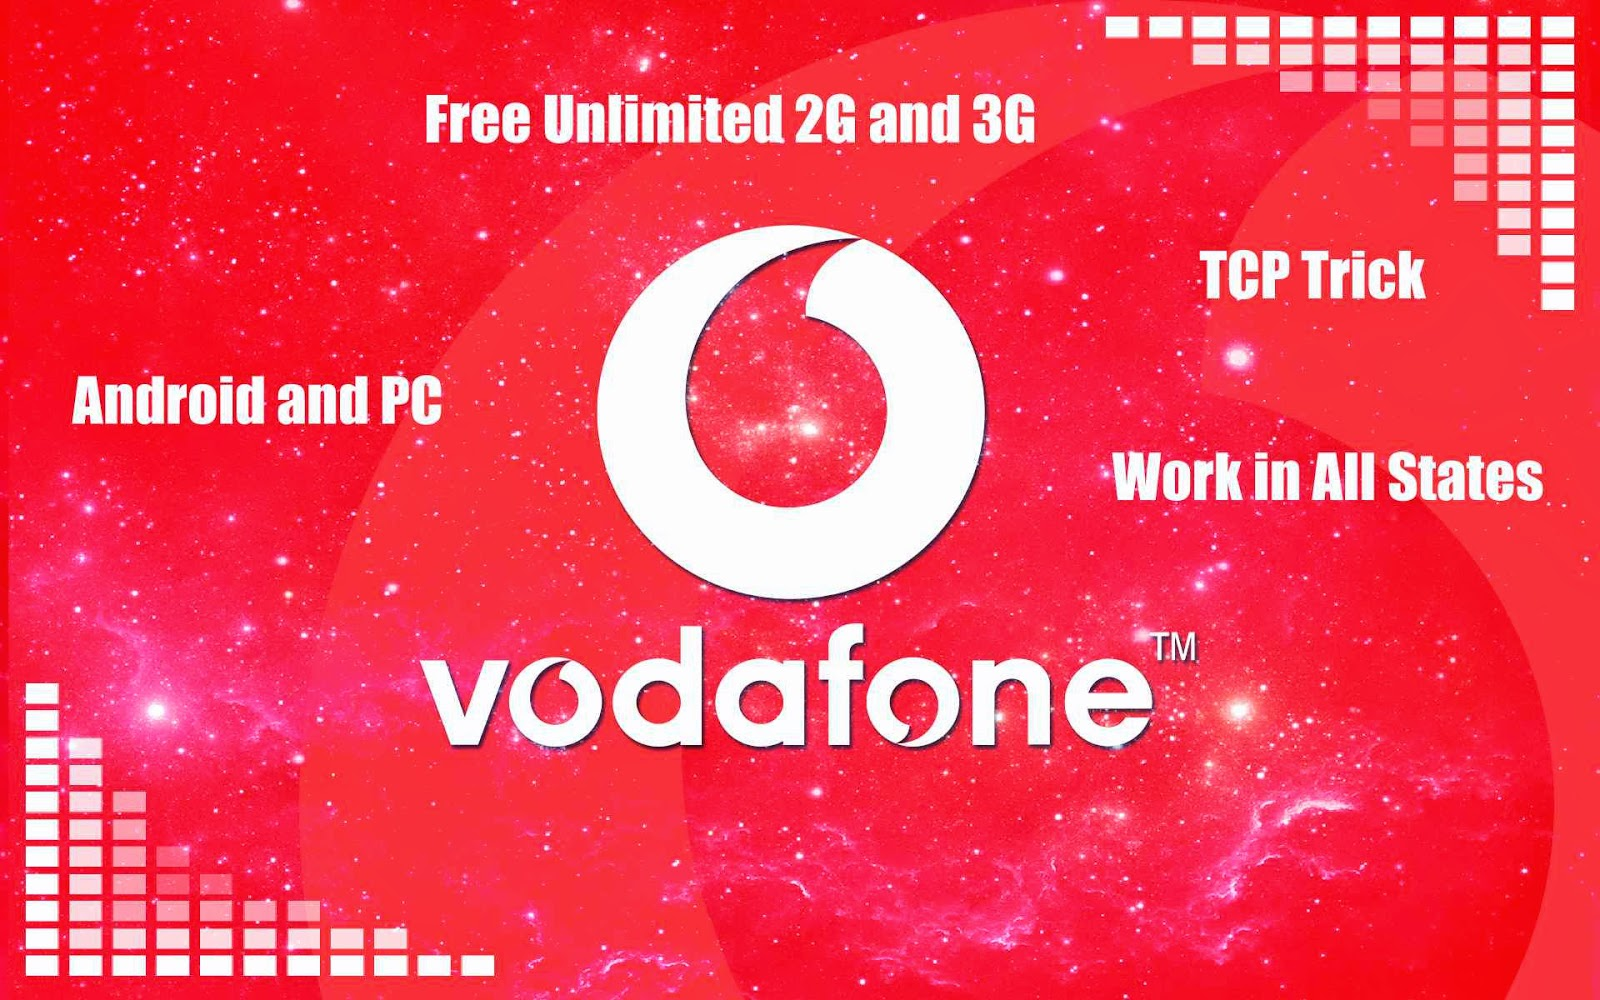 Vodafone Free 3G Unlimited Internet TCP Trick 2015